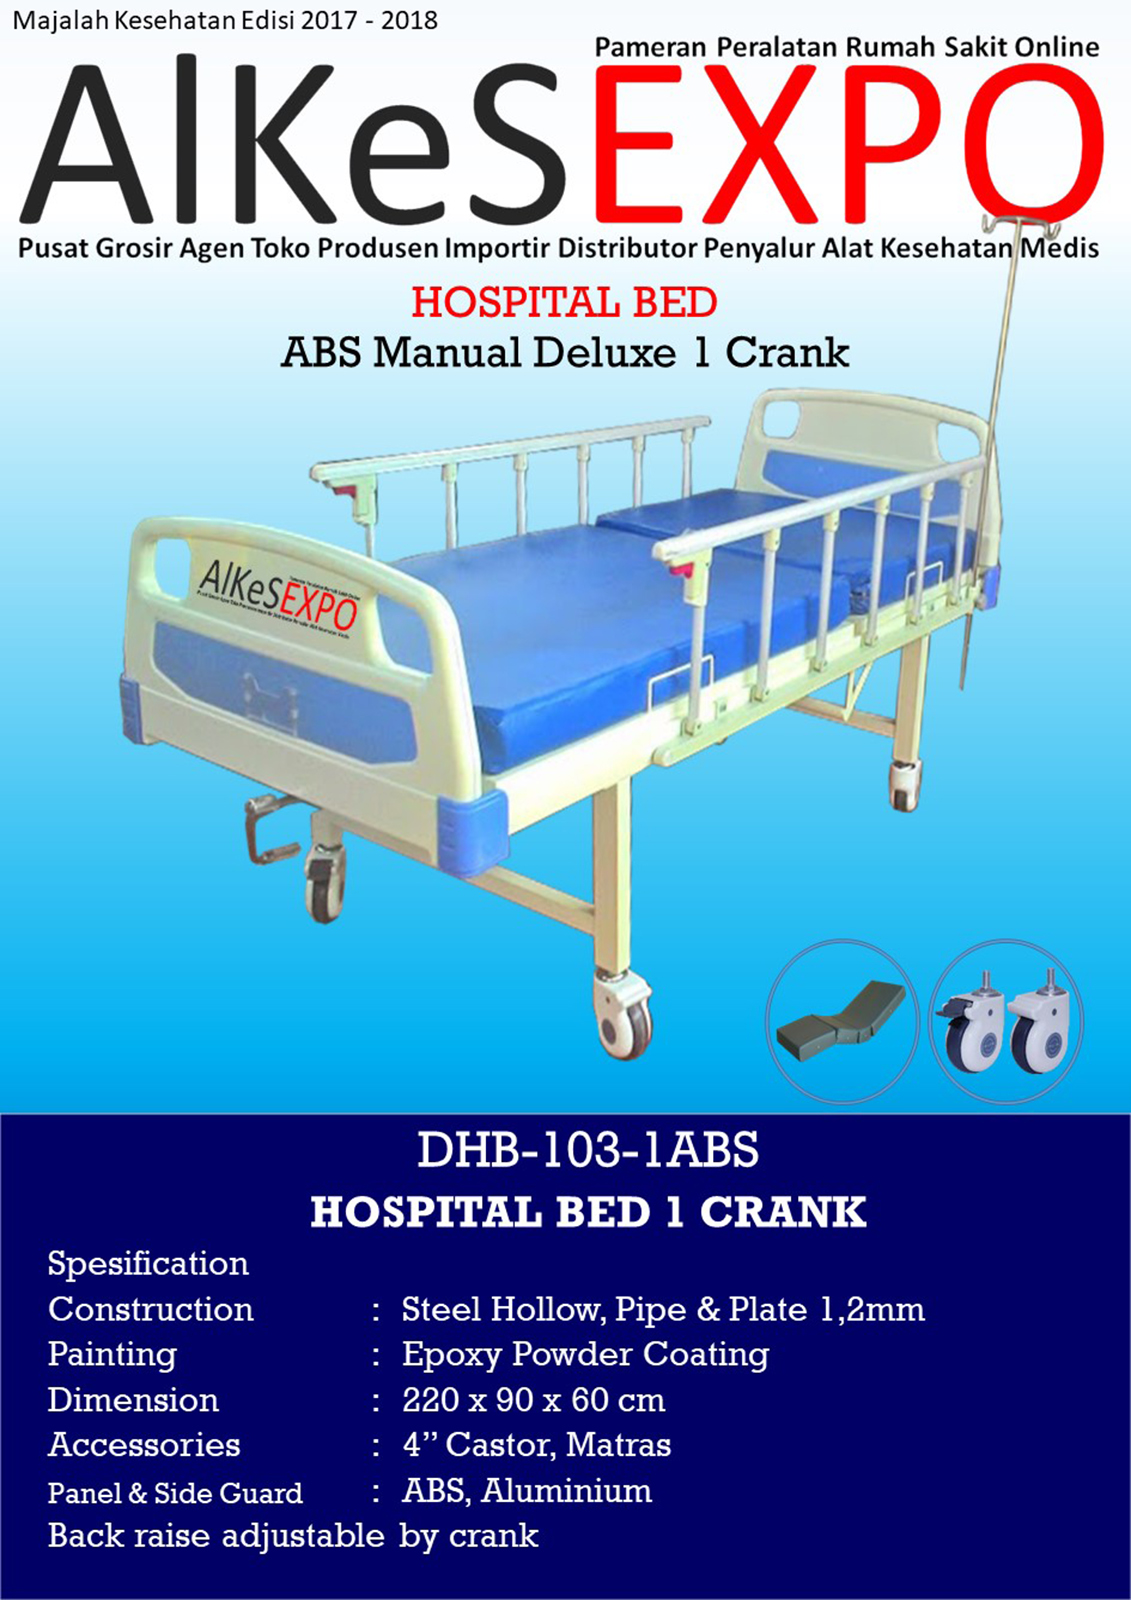 Hospital Bed Manual Deluxe 1 Crank DHB-103-1ABS